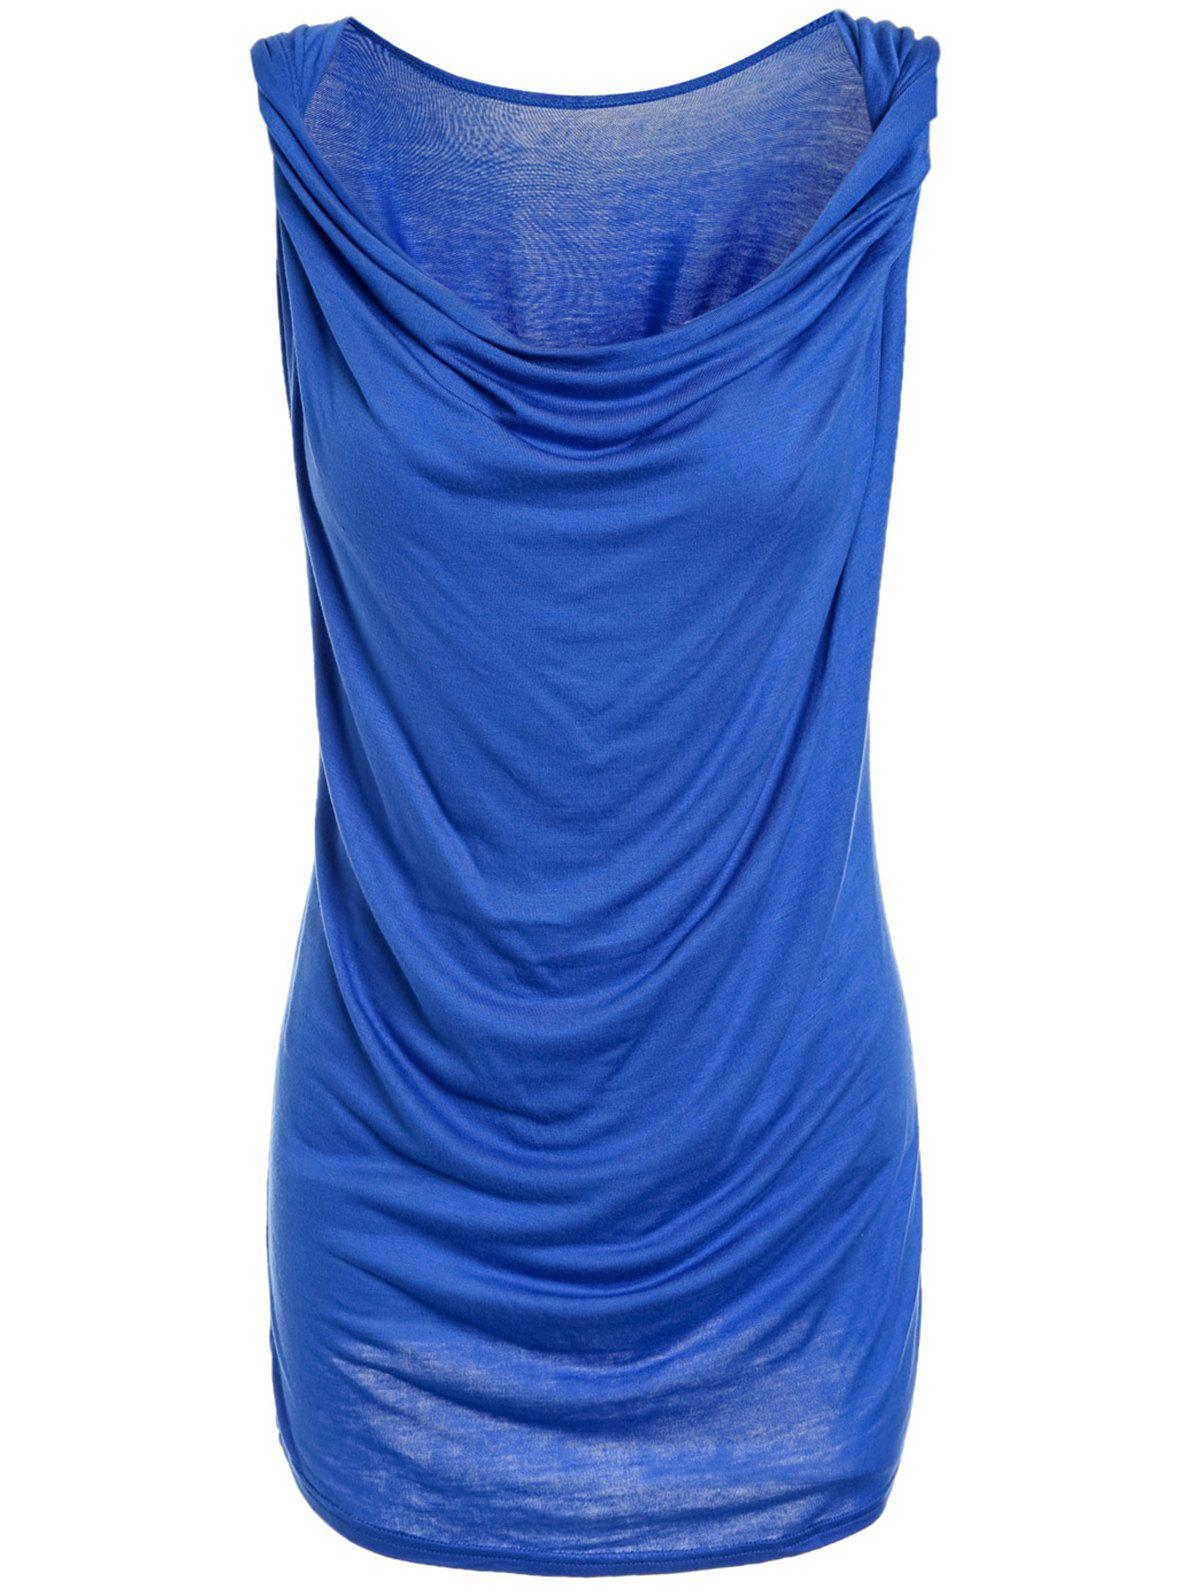 Fashionable Sleeveless Solid Color T-Shirt For Women - BLUE M